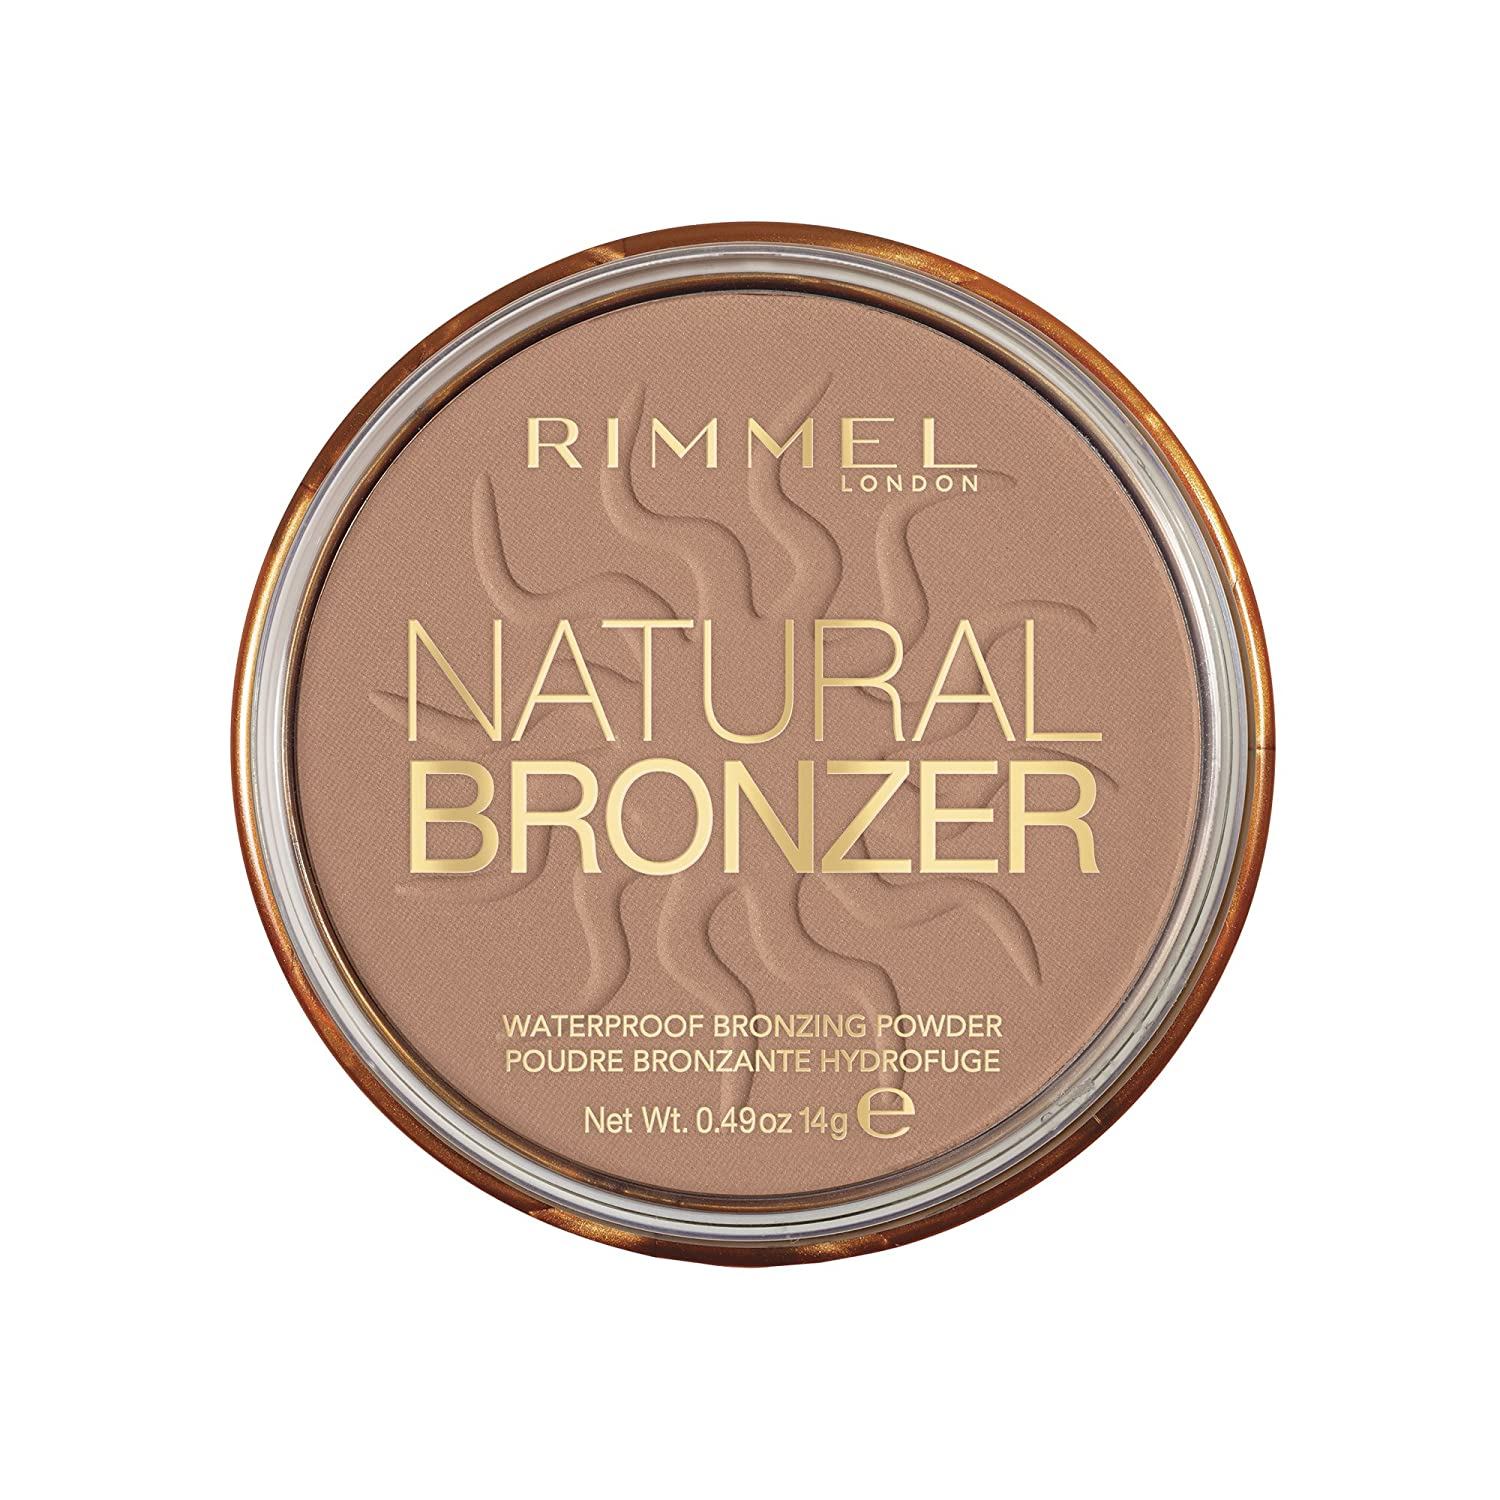 Rimmel London - Natural Bronzer Waterproof Bronzing Powder Coty 34788724022